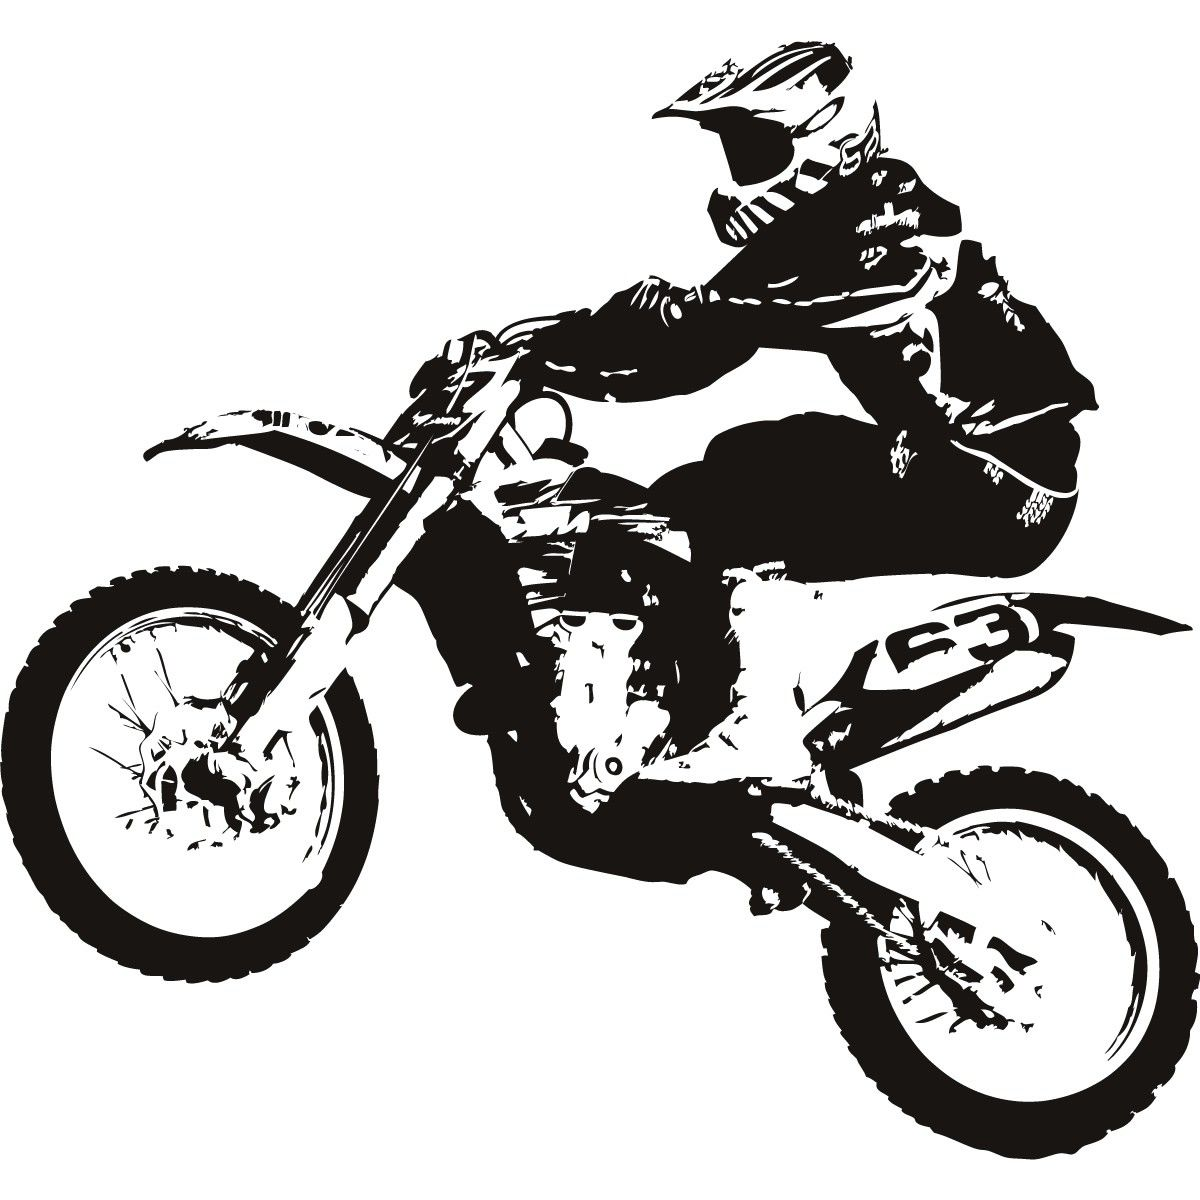 Free download for your. Bike clipart motocross bike jpg black and white download